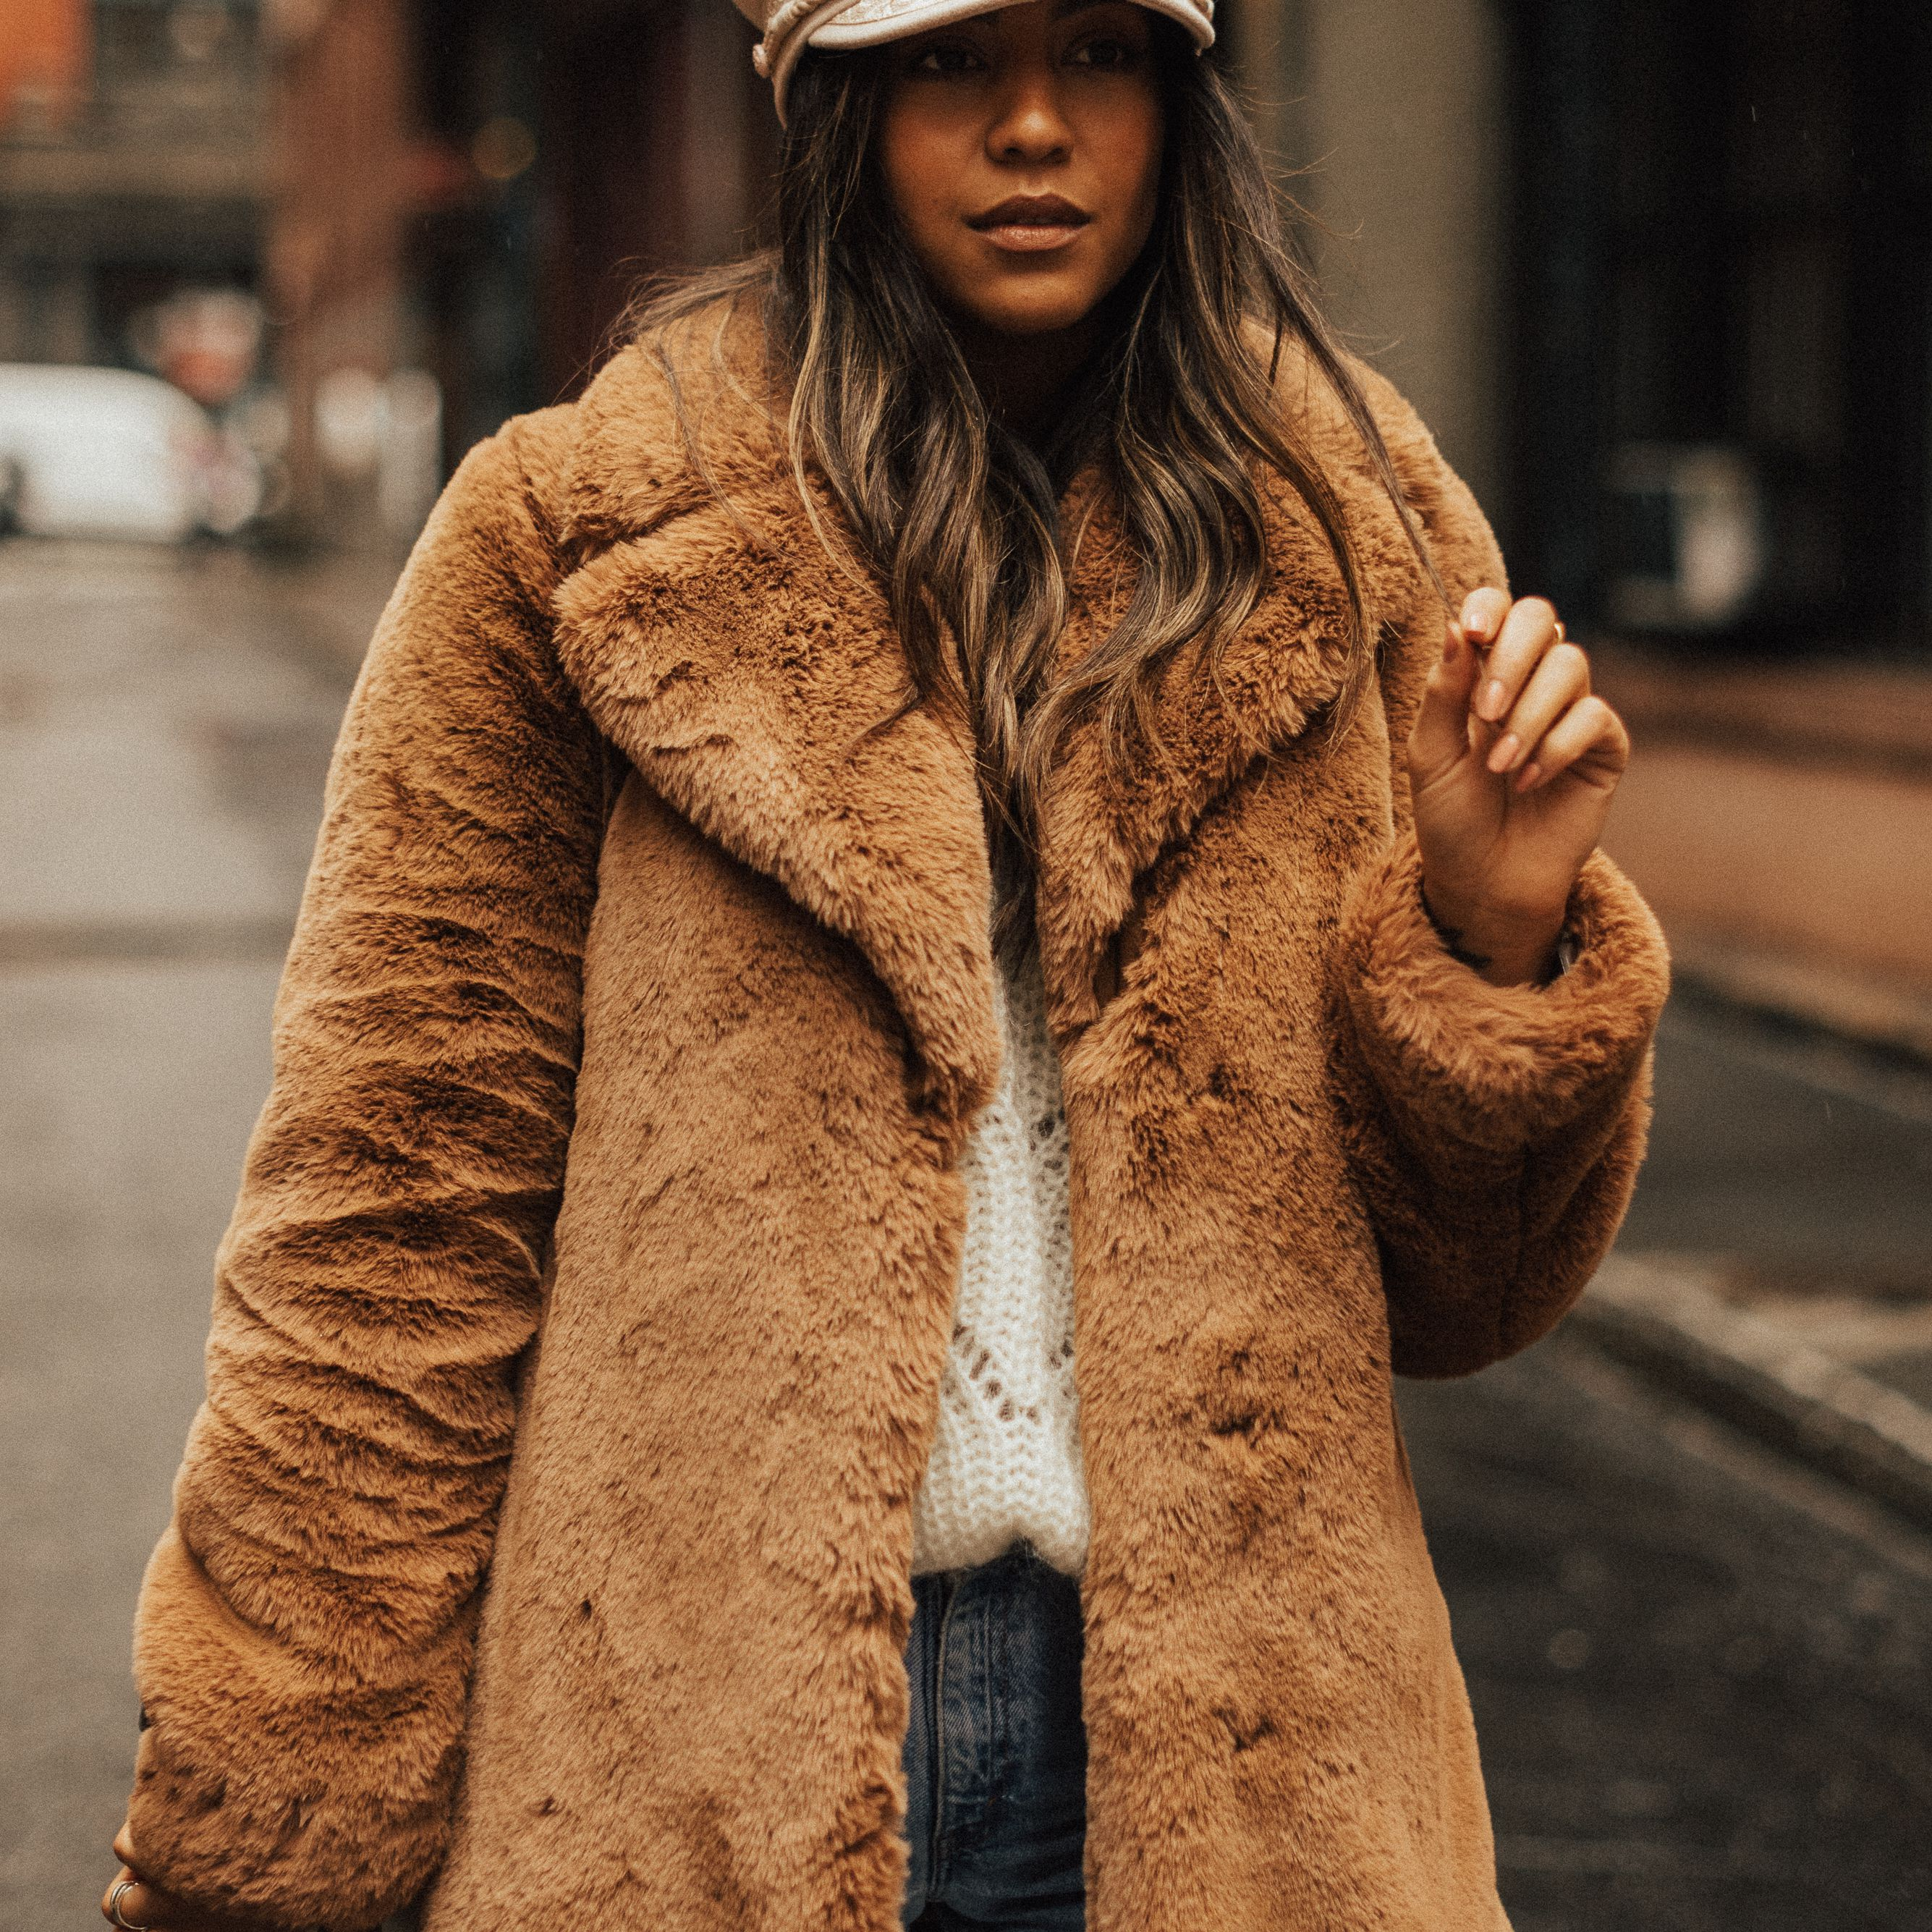 a70d4136 12 Types of Hats for Women That Combine Warmth and Style